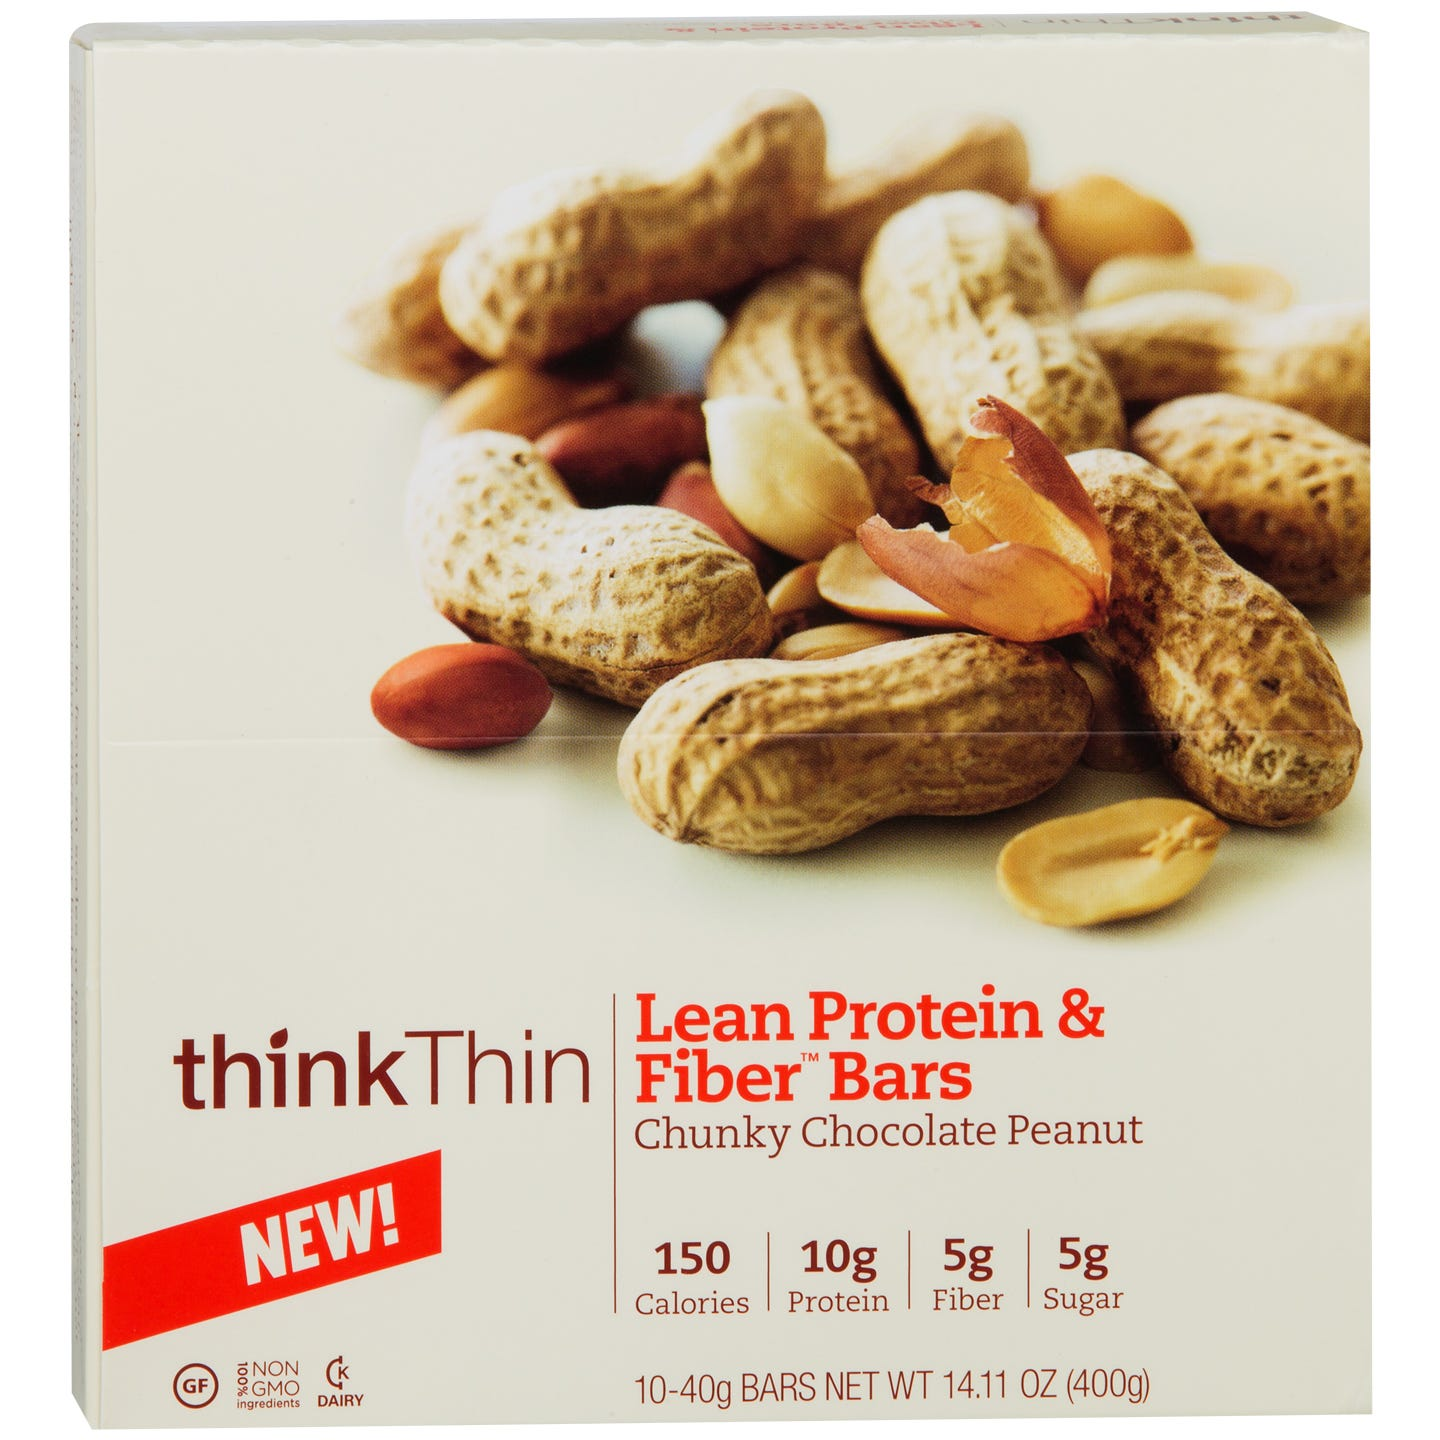 Lean Protein & Fiber Bar Chunky Chocolate Peanut(10 ct) - Think Thin Bars - Rapid Diet Weight Loss Products Shop